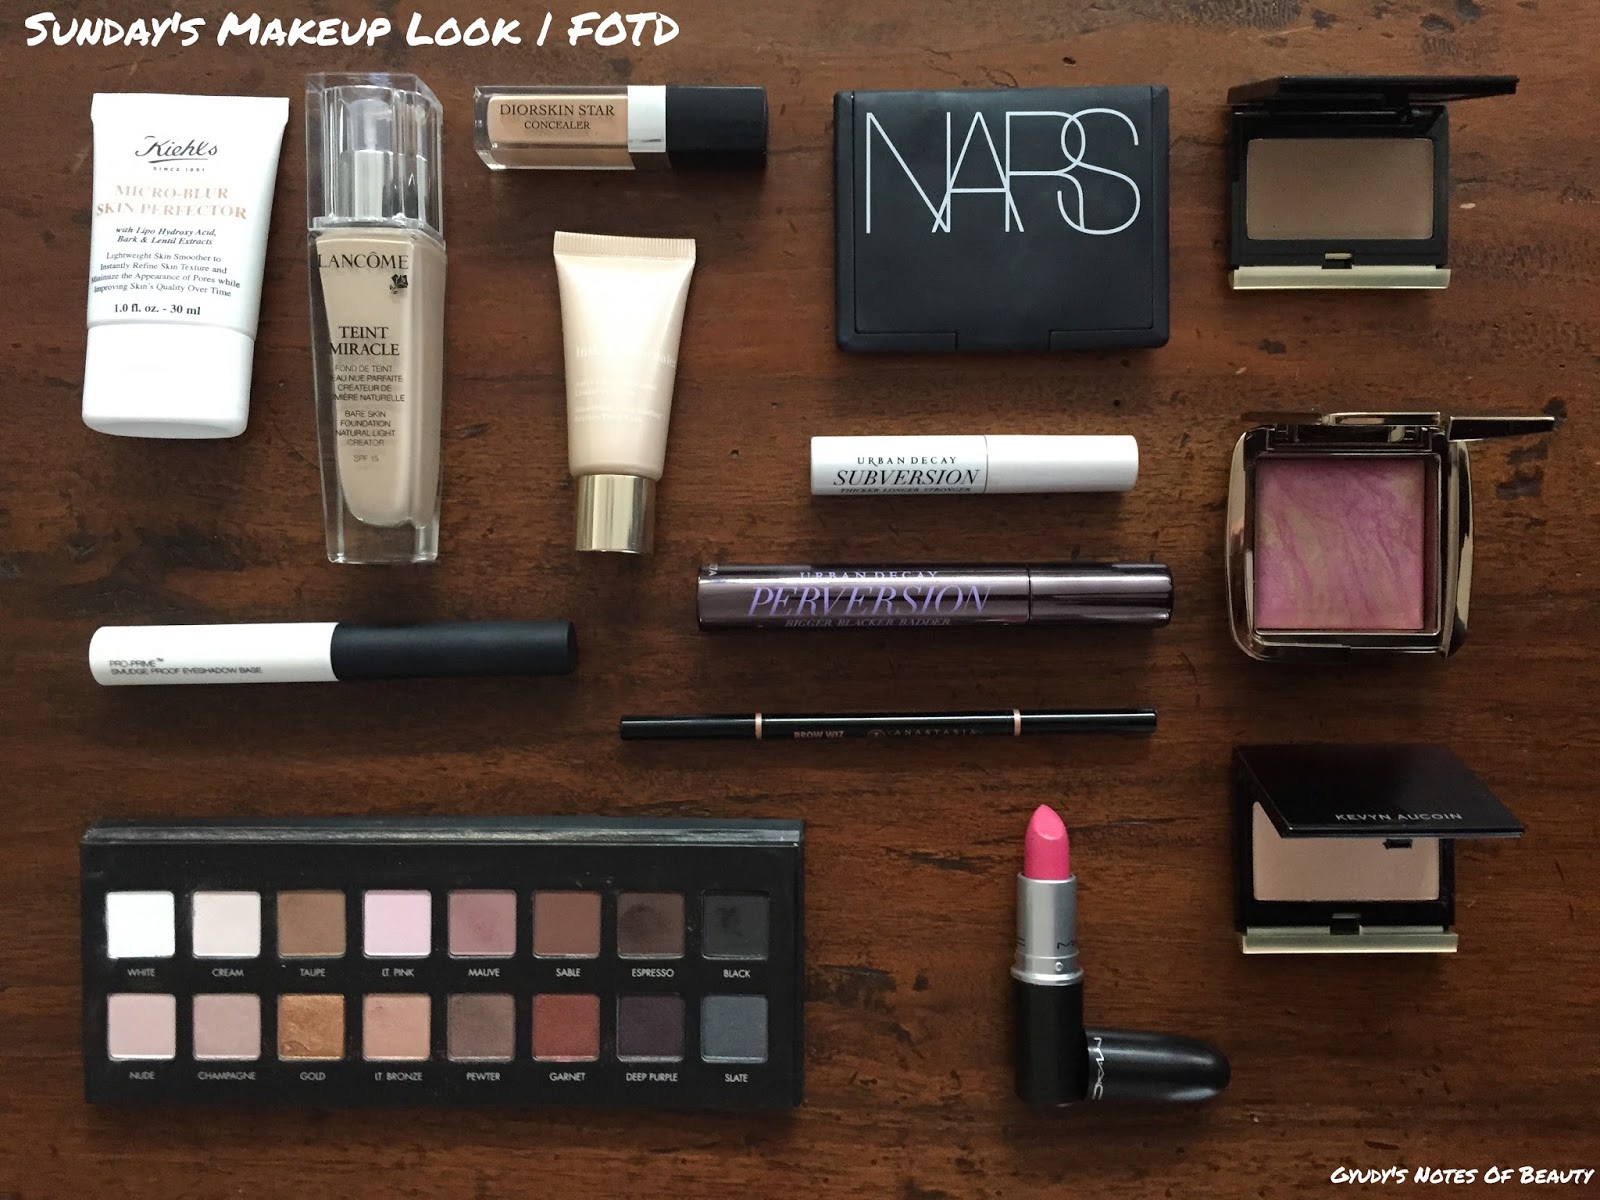 Nars Lorac Hourglass Urban Decay Lancome Kevin Aucoin Kiehl's Dior Clarins Anastasia MAC